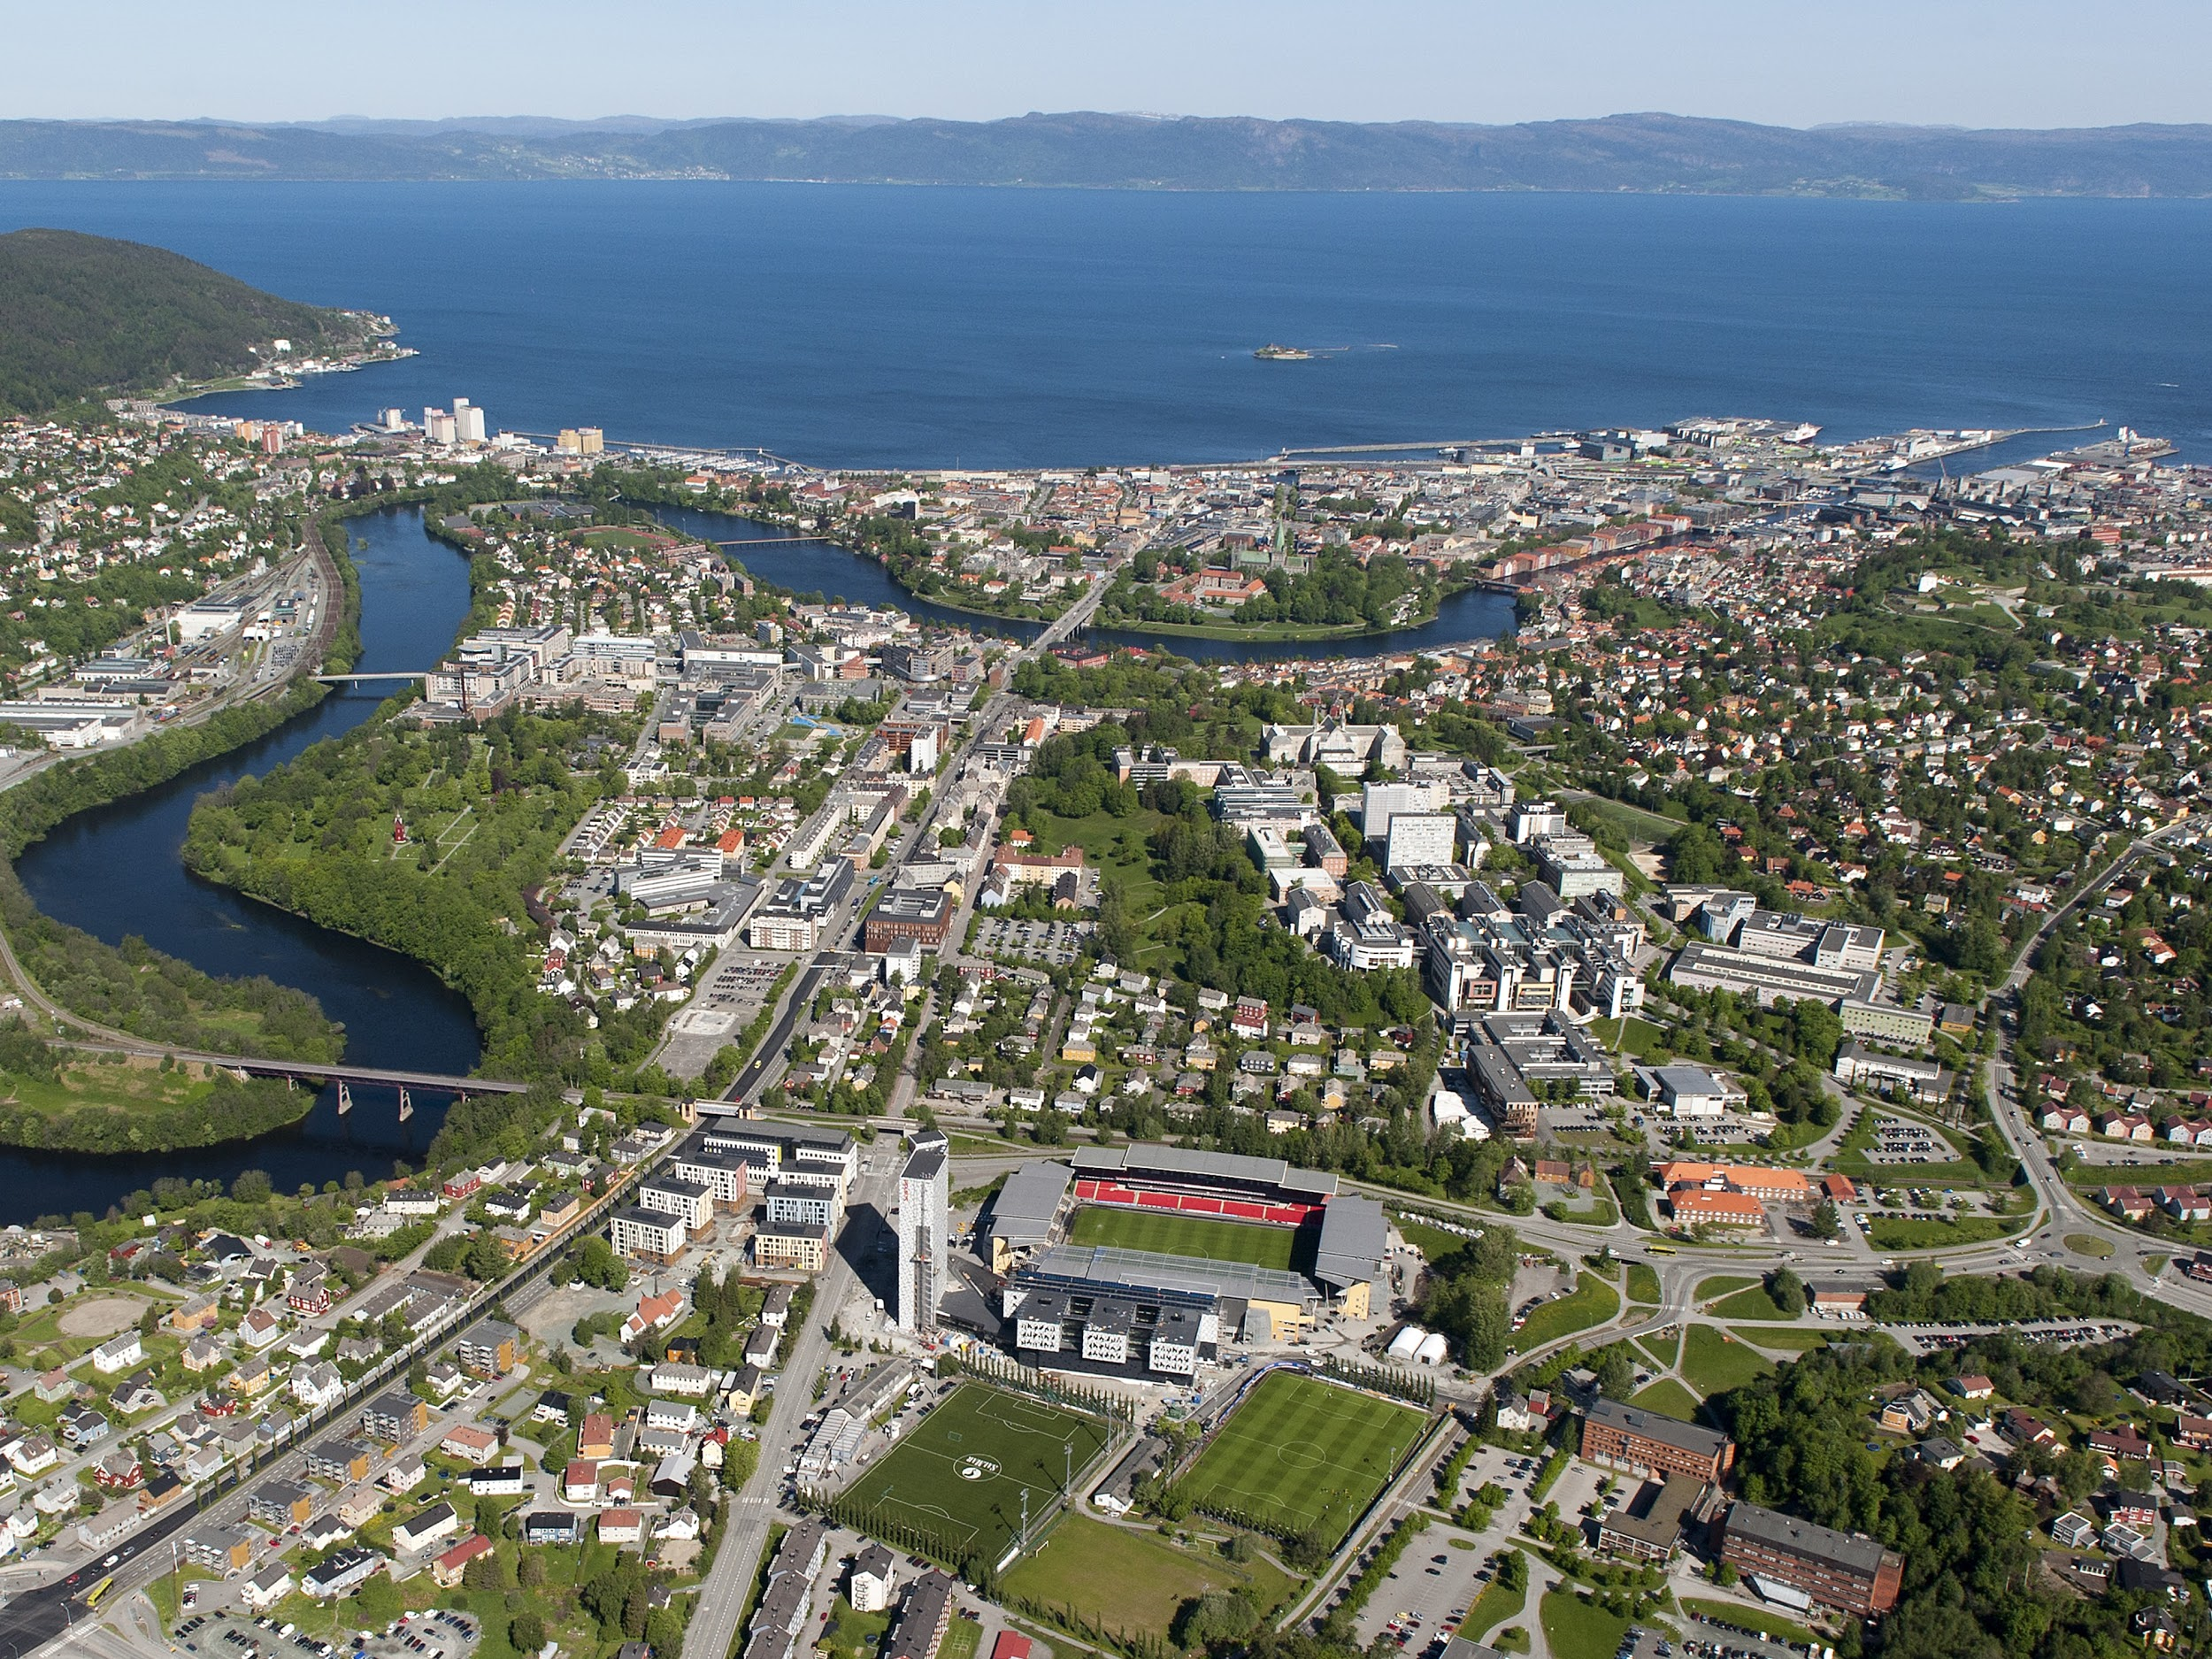 City of Trondheim seen from above.